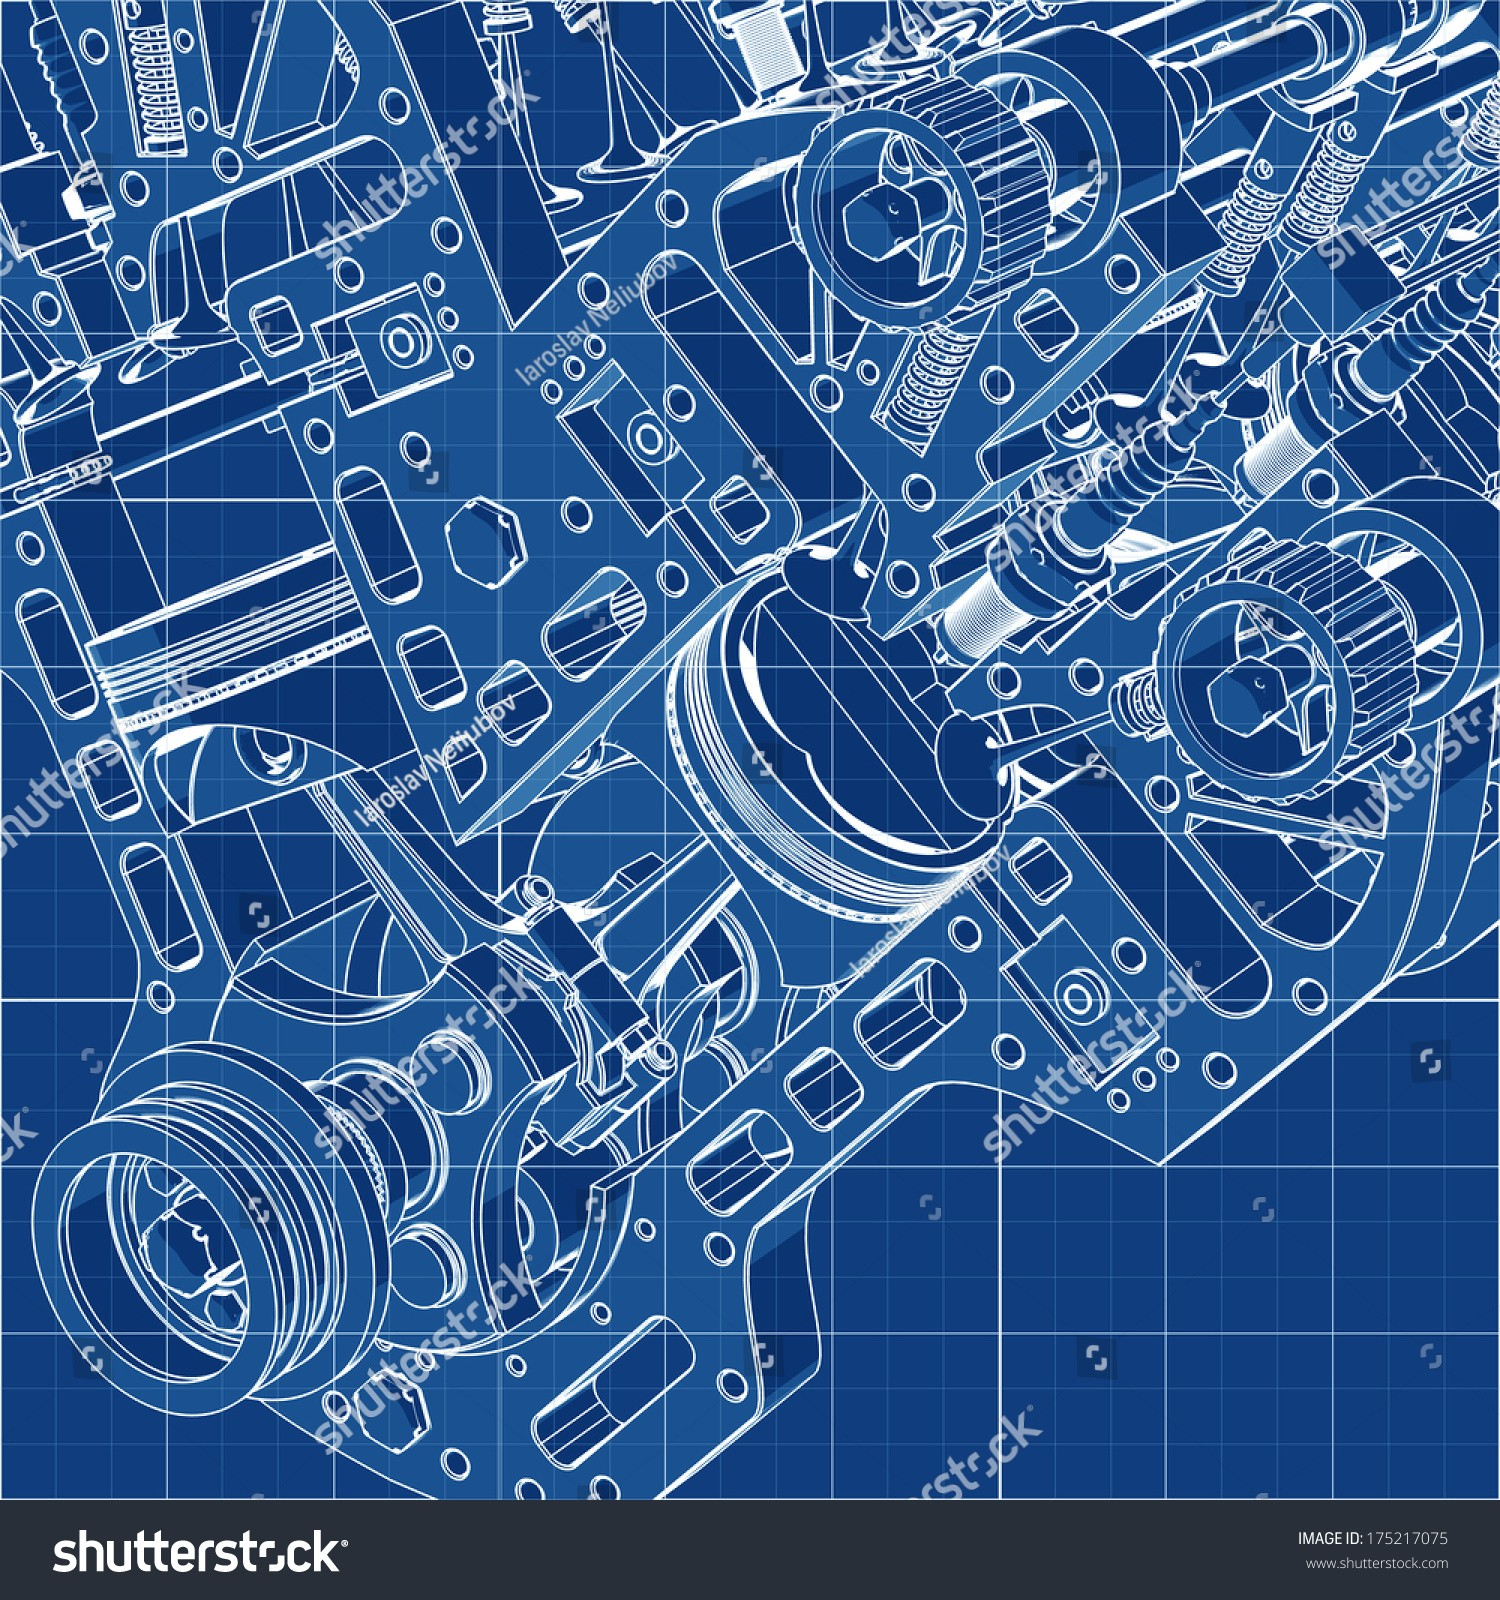 animated v8 engine diagram my wiring diagram engine head diagram v8 car engine cad cartoon white drawing on blue background illustration outline high resolution 3d